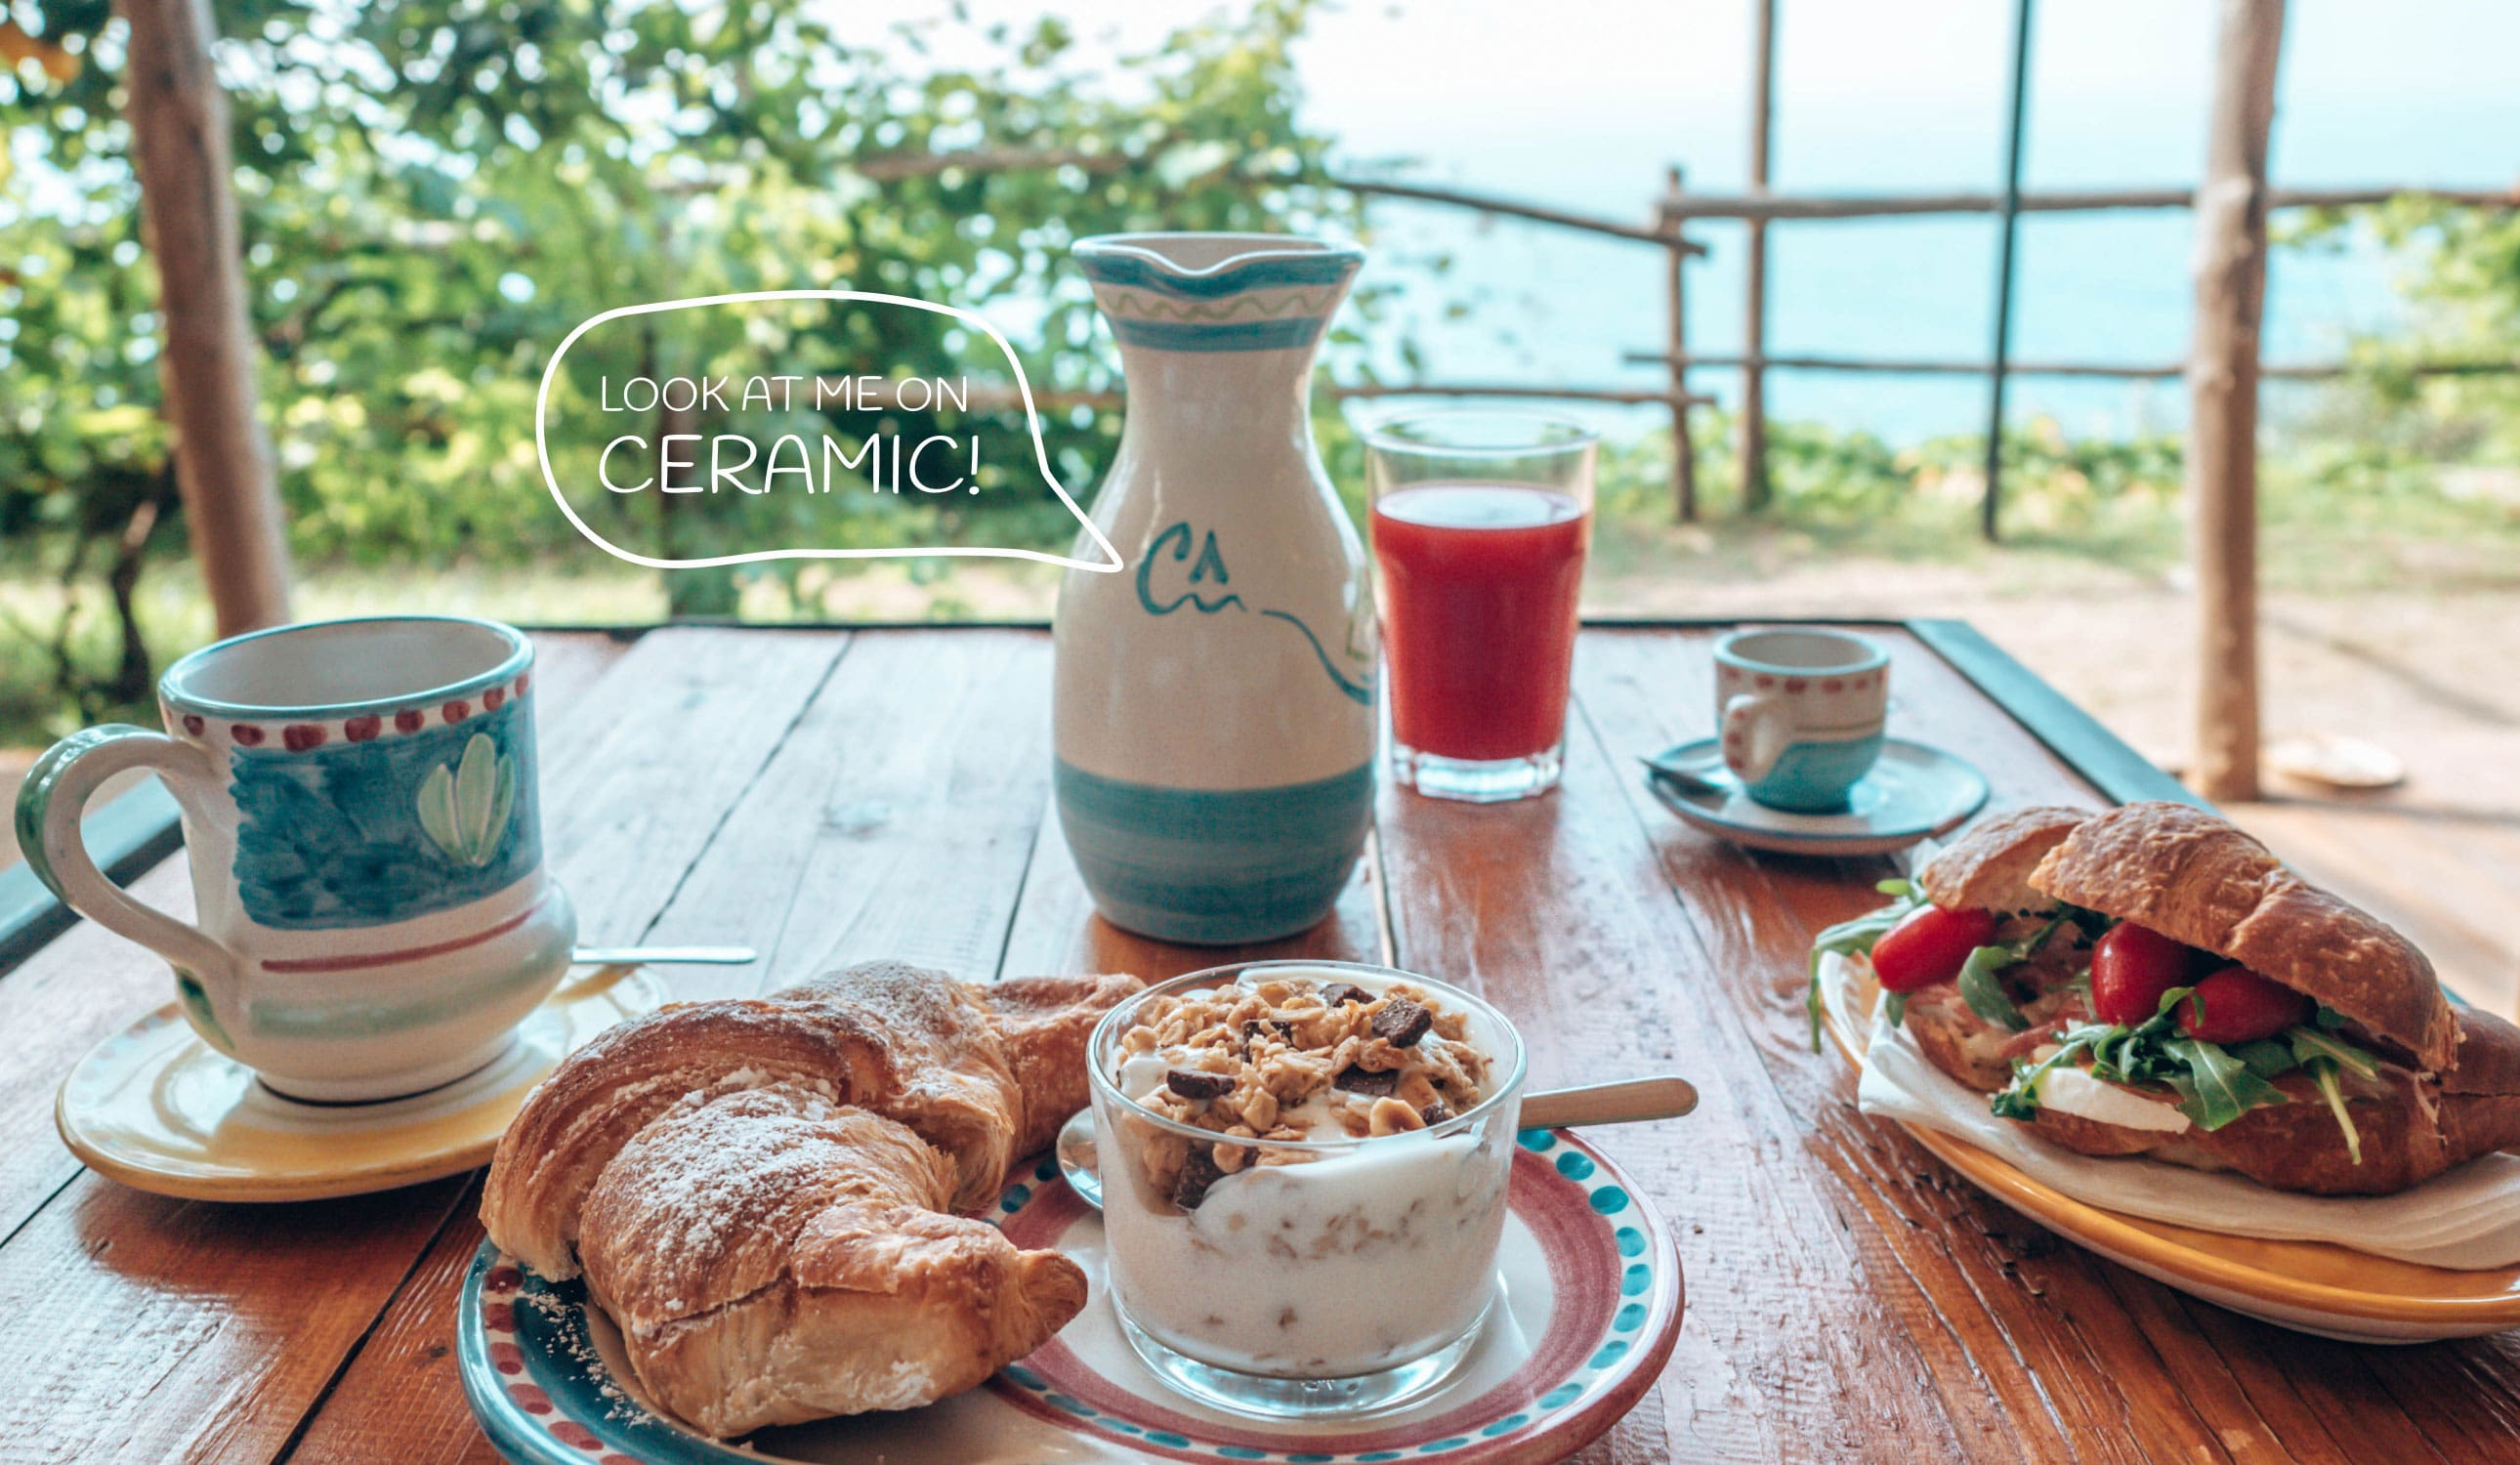 A coffee and sweet and salty breakfast served in hand-made Vietri ceramics.